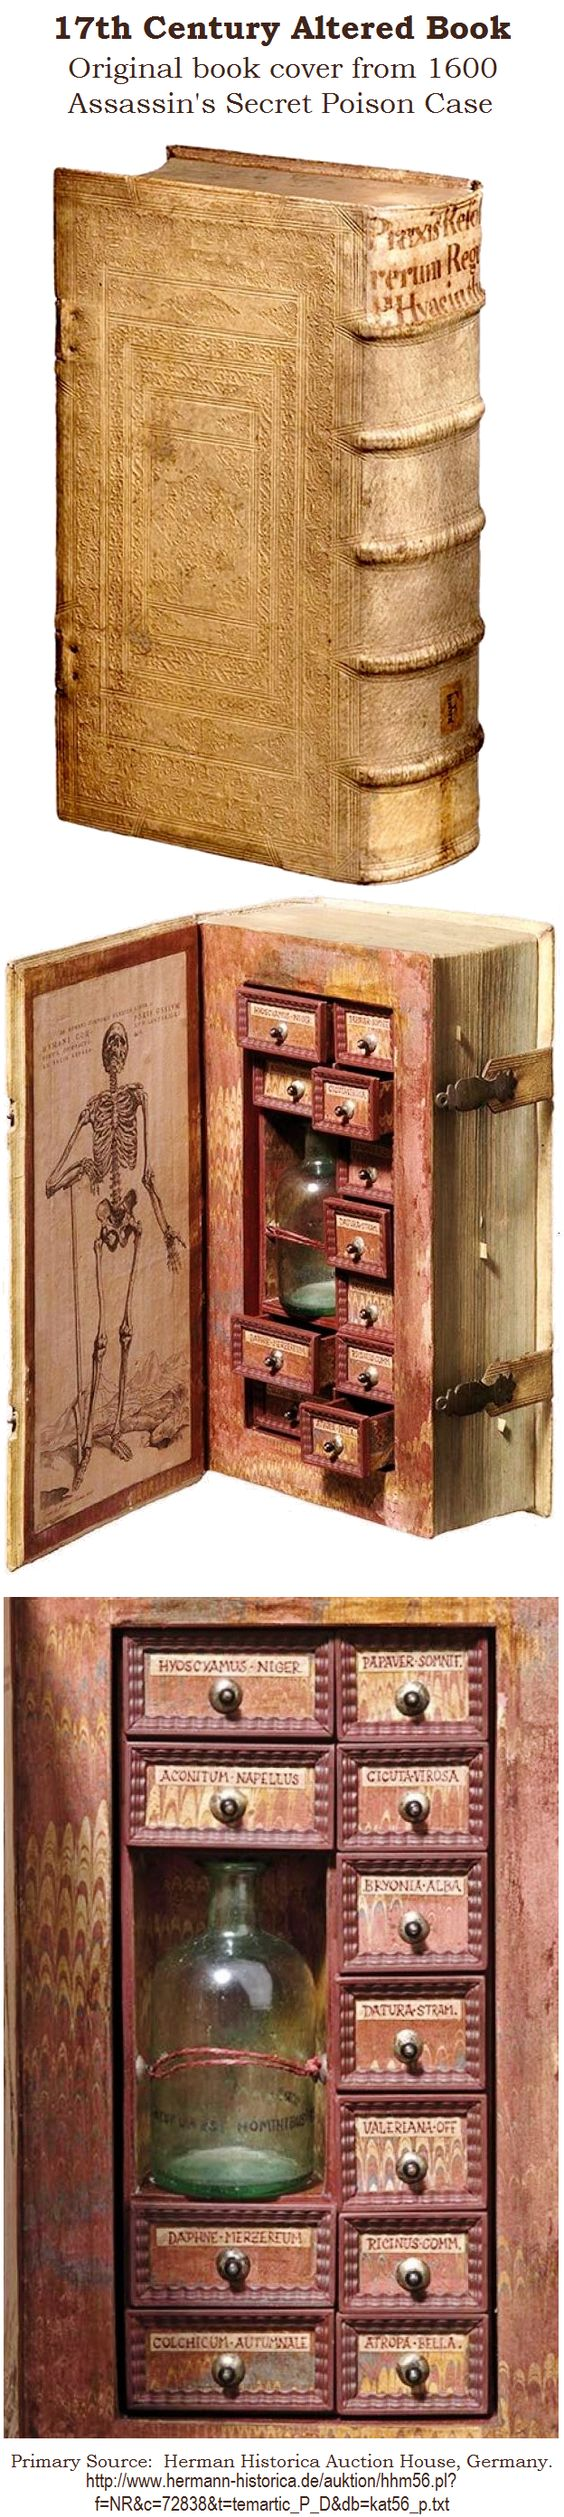 I know this is more of a home thing but I have a book on medieval torture and poisons...for reasons. It would be perfect. Or we buy a giant old atlas and make drawers to fill with our adventures